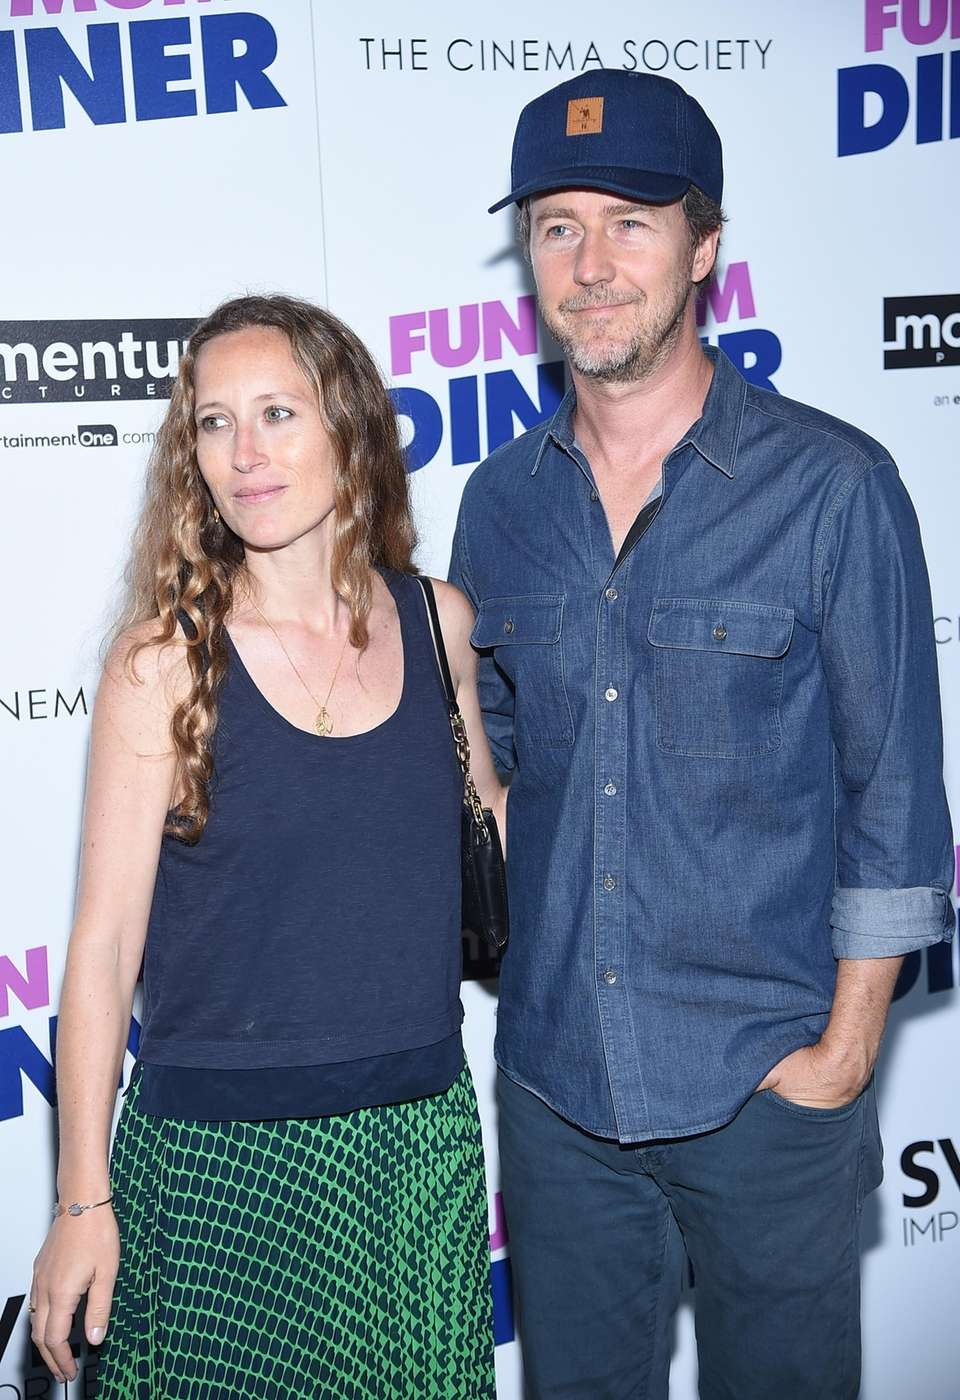 Shauna Robertson and Edward Norton attend a screening